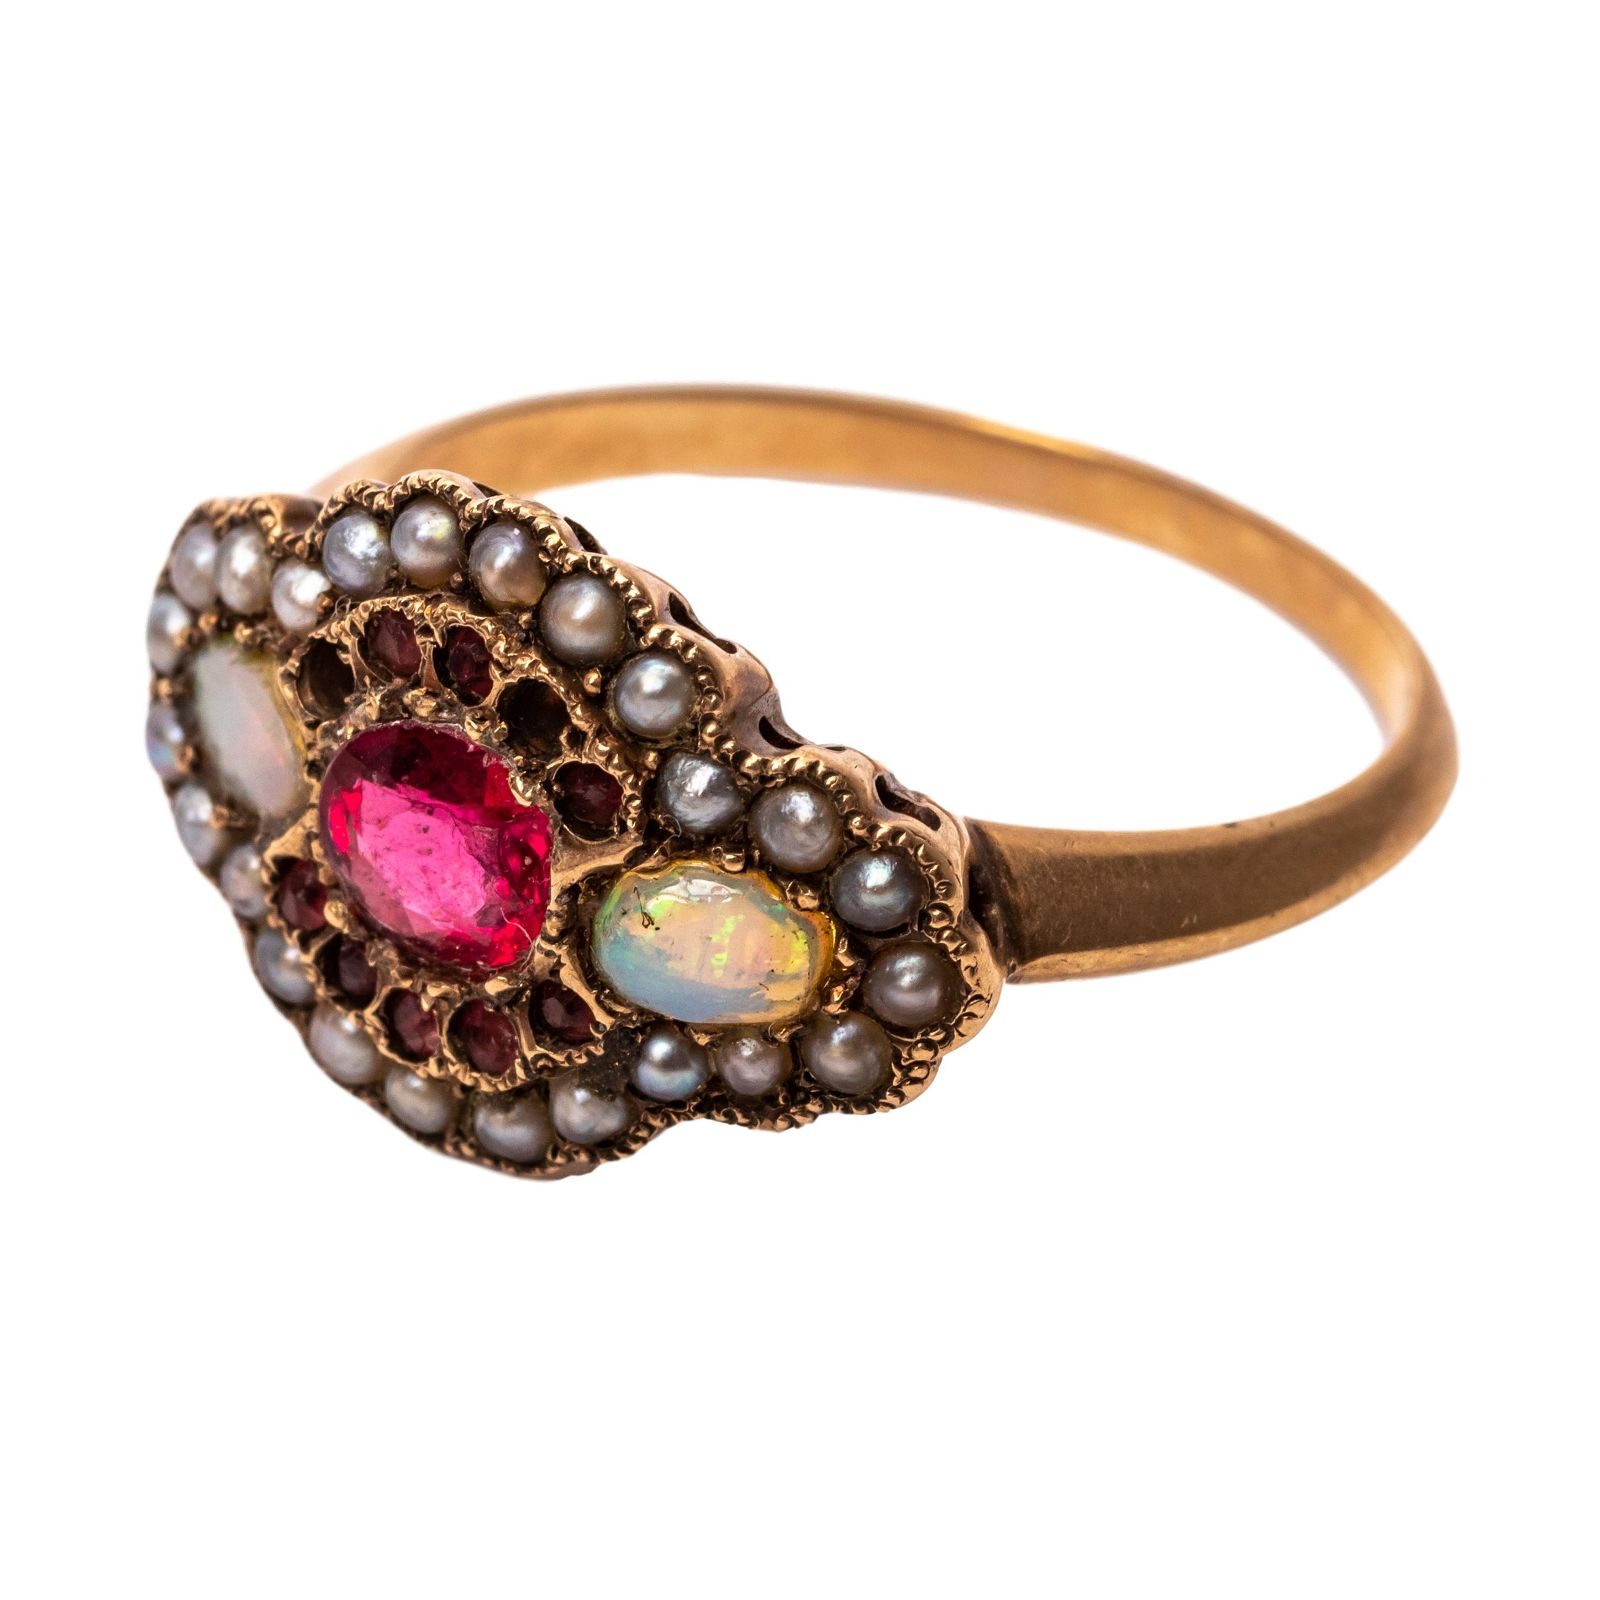 14k Gold Victorian Ladies Ruby Opal and Pearl Ring